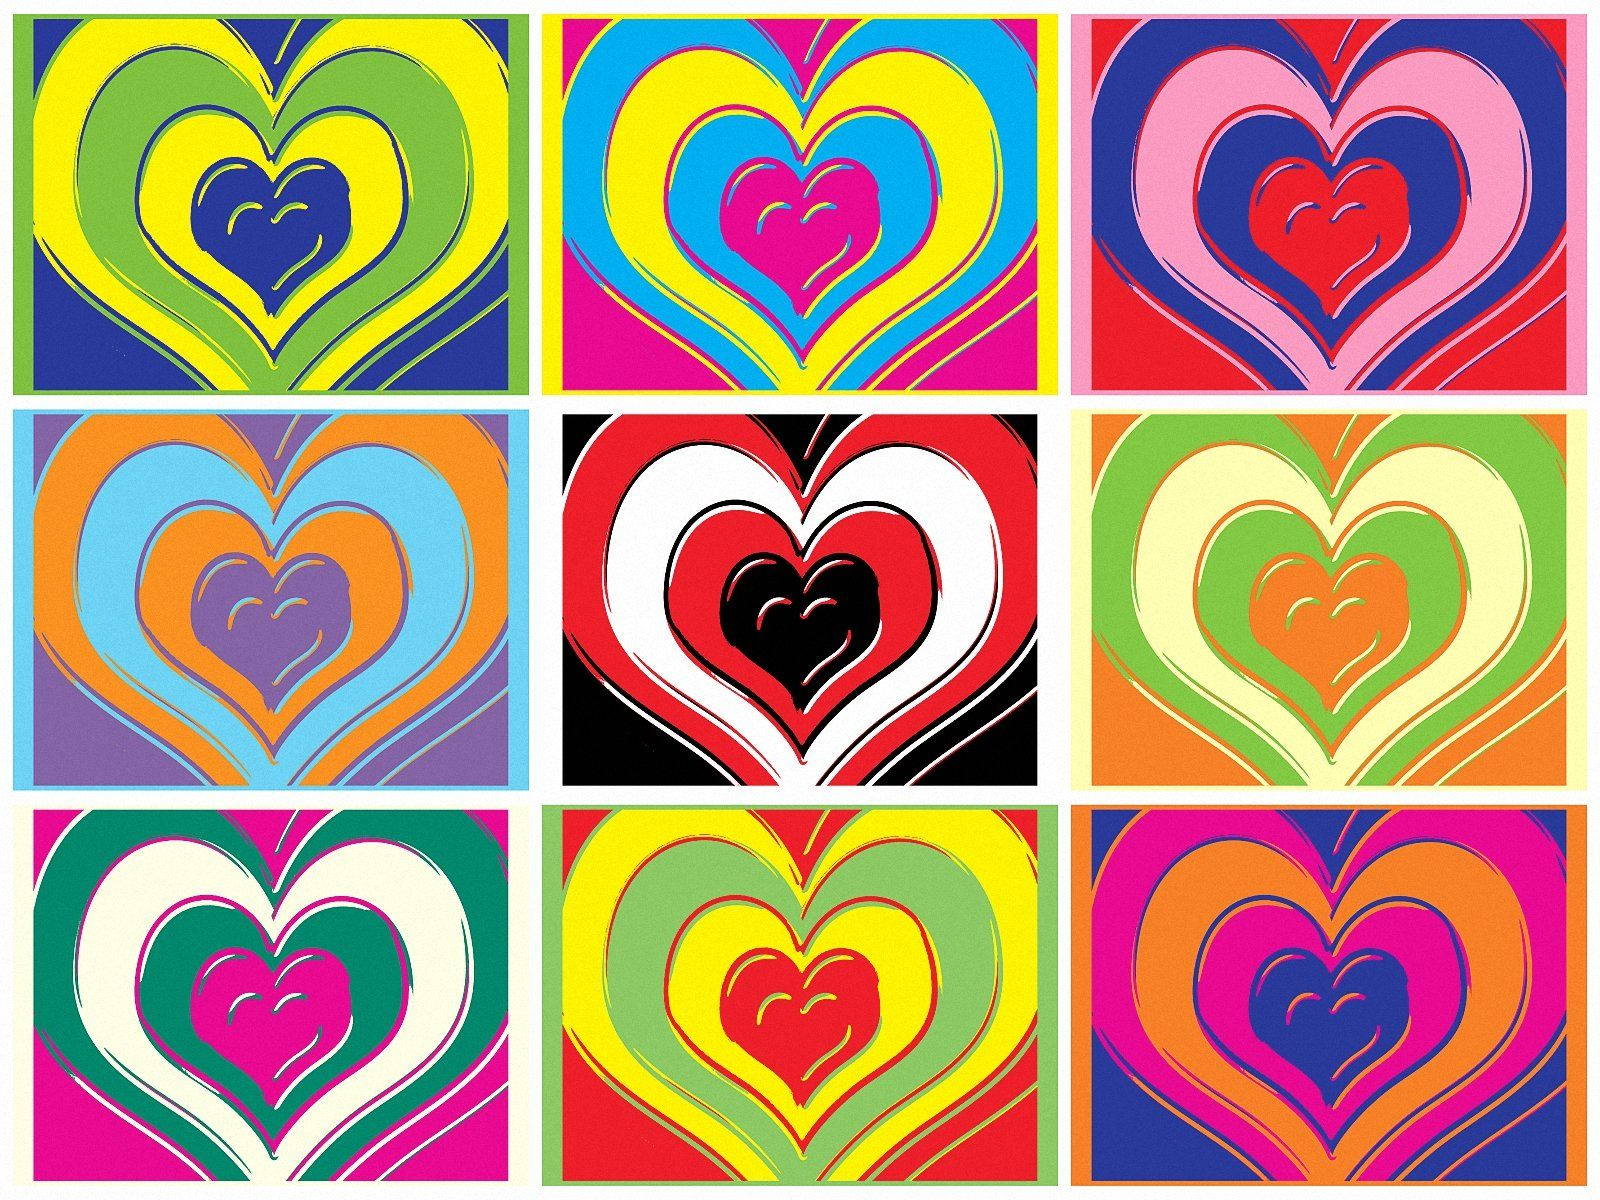 BRIGHT LOVE HEART POP ART ANDY WARHOL A4 Size SATIN PAPER PHOTO